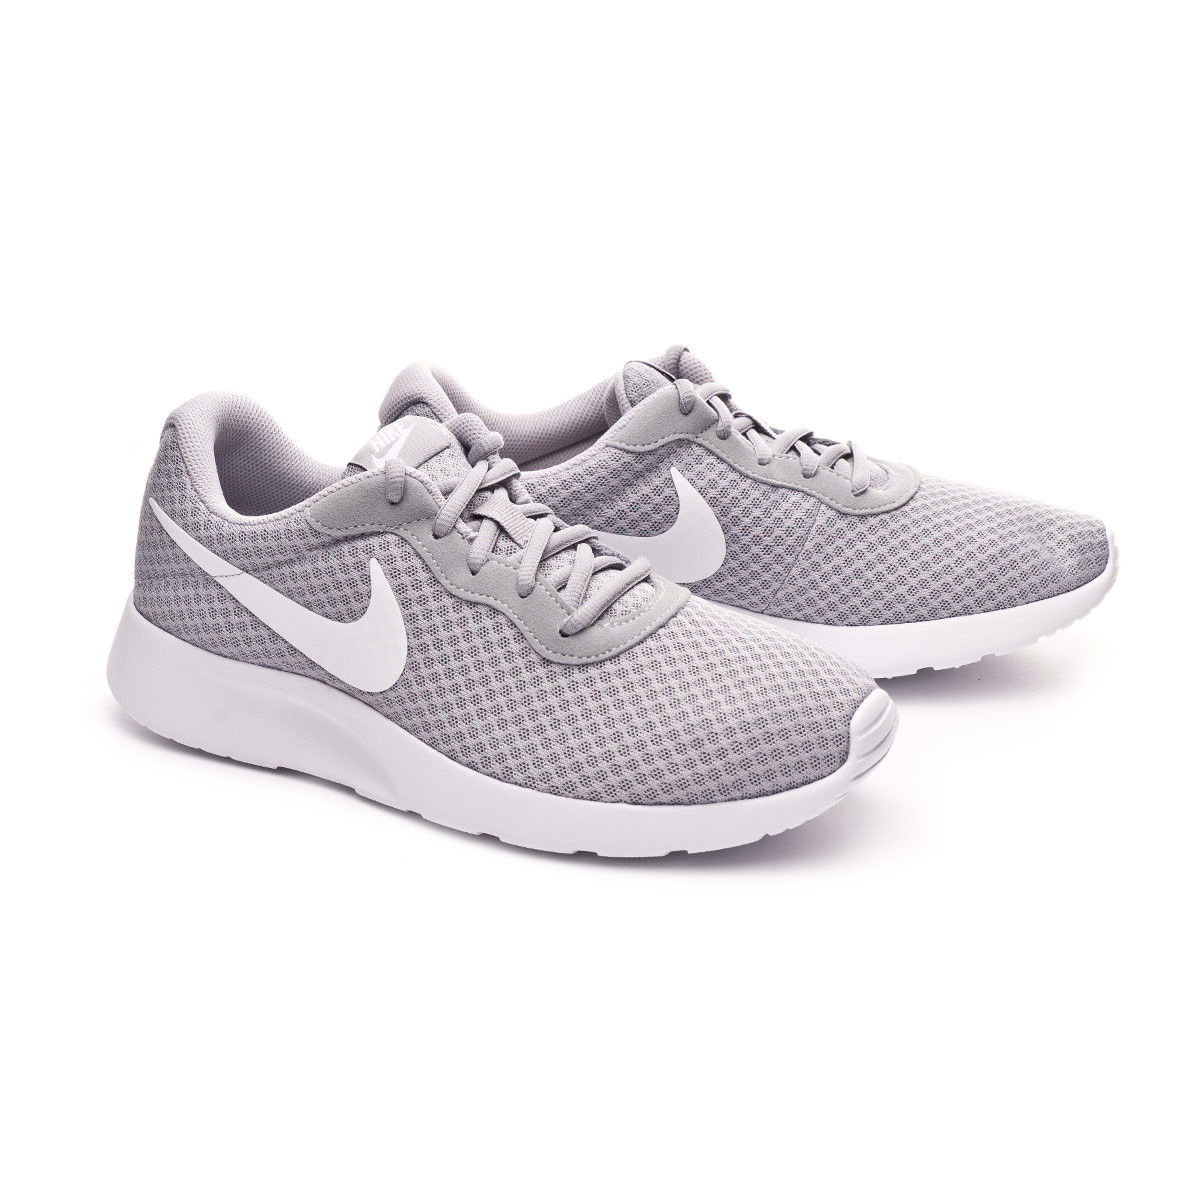 Nike Tanjun at | Grey tennis